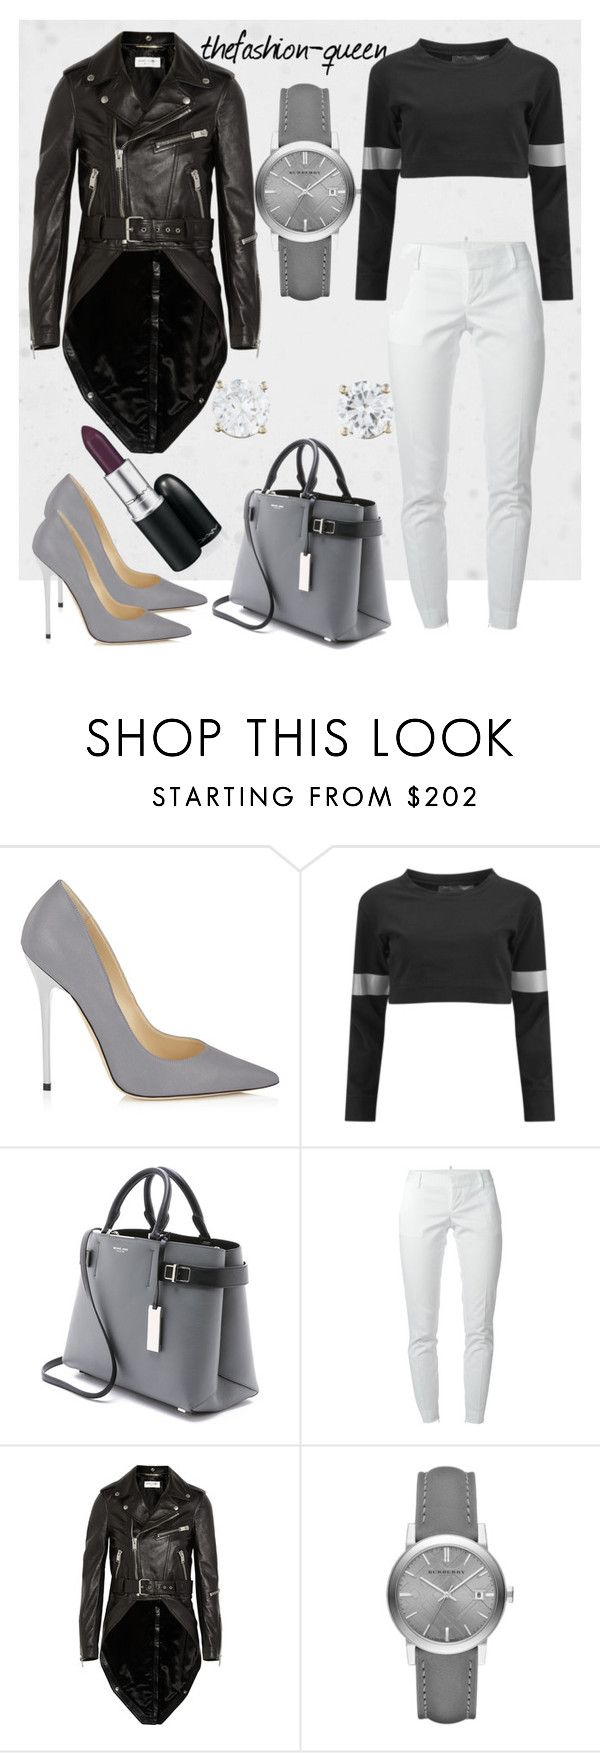 """Untitled #33"" by thefashion-queen ❤ liked on Polyvore featuring Jimmy Choo, Norma Kamali, Michael Kors, Dsquared2, Yves Saint Laurent and Burberry"